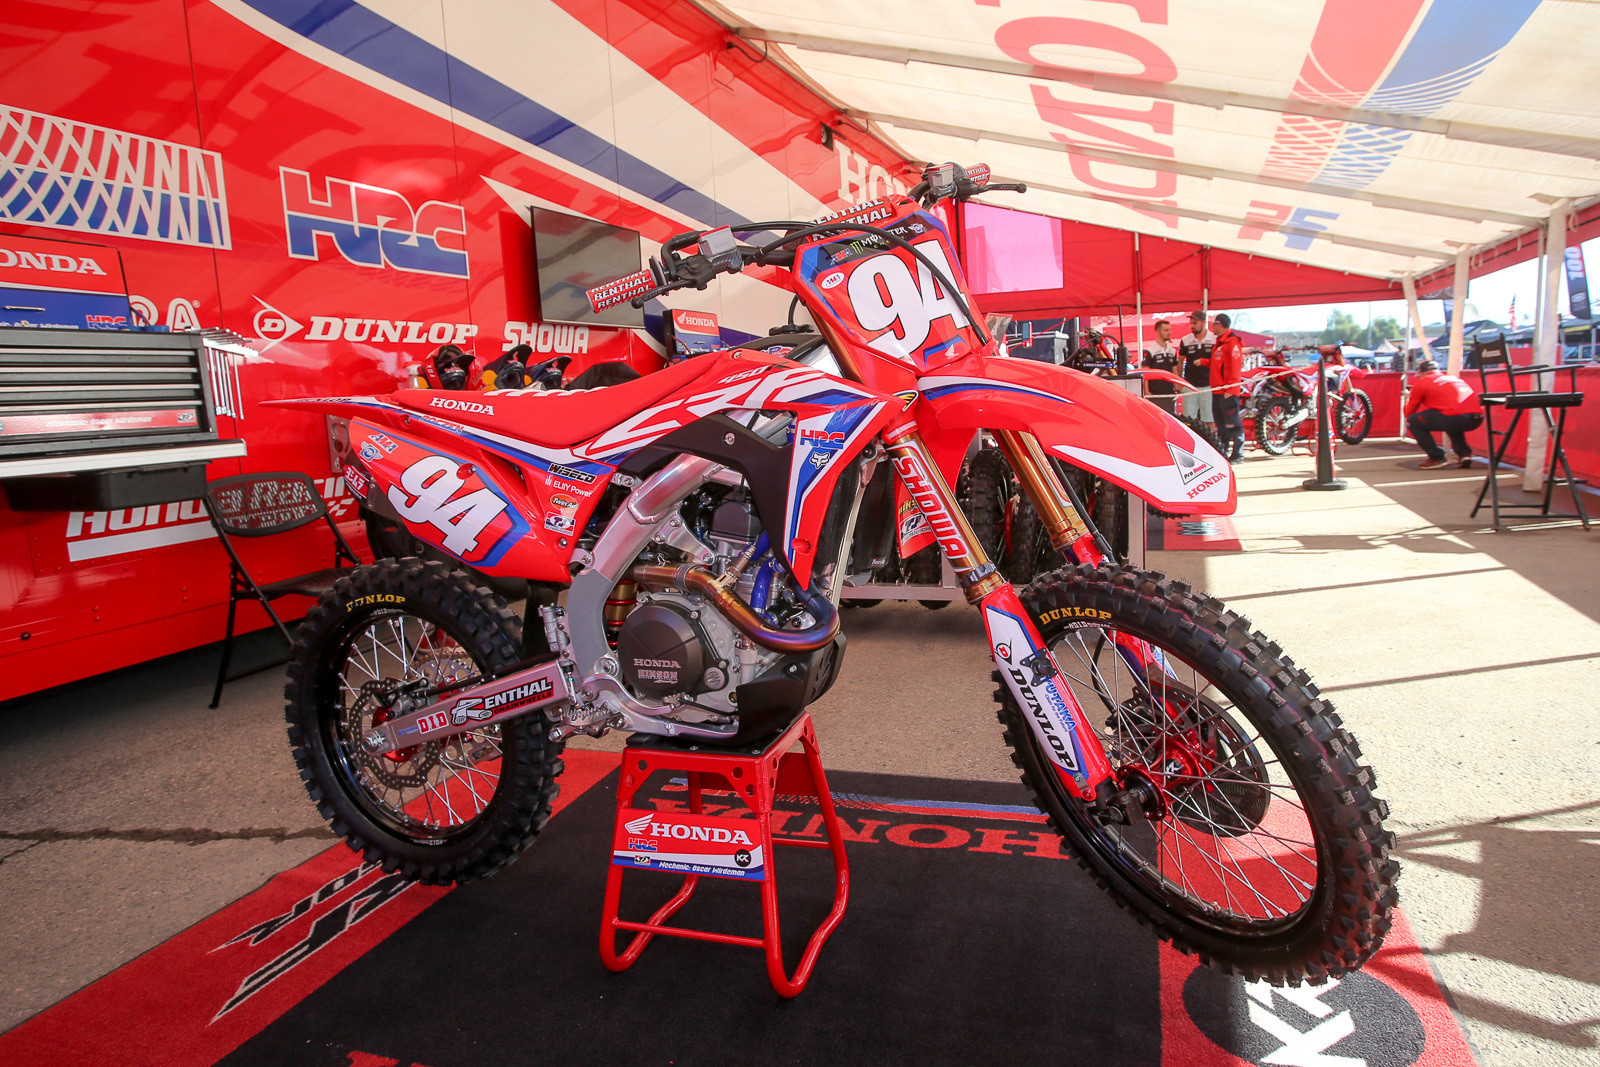 Man, the Team Honda HRC bike of Ken Roczen looks sweet with red plates.